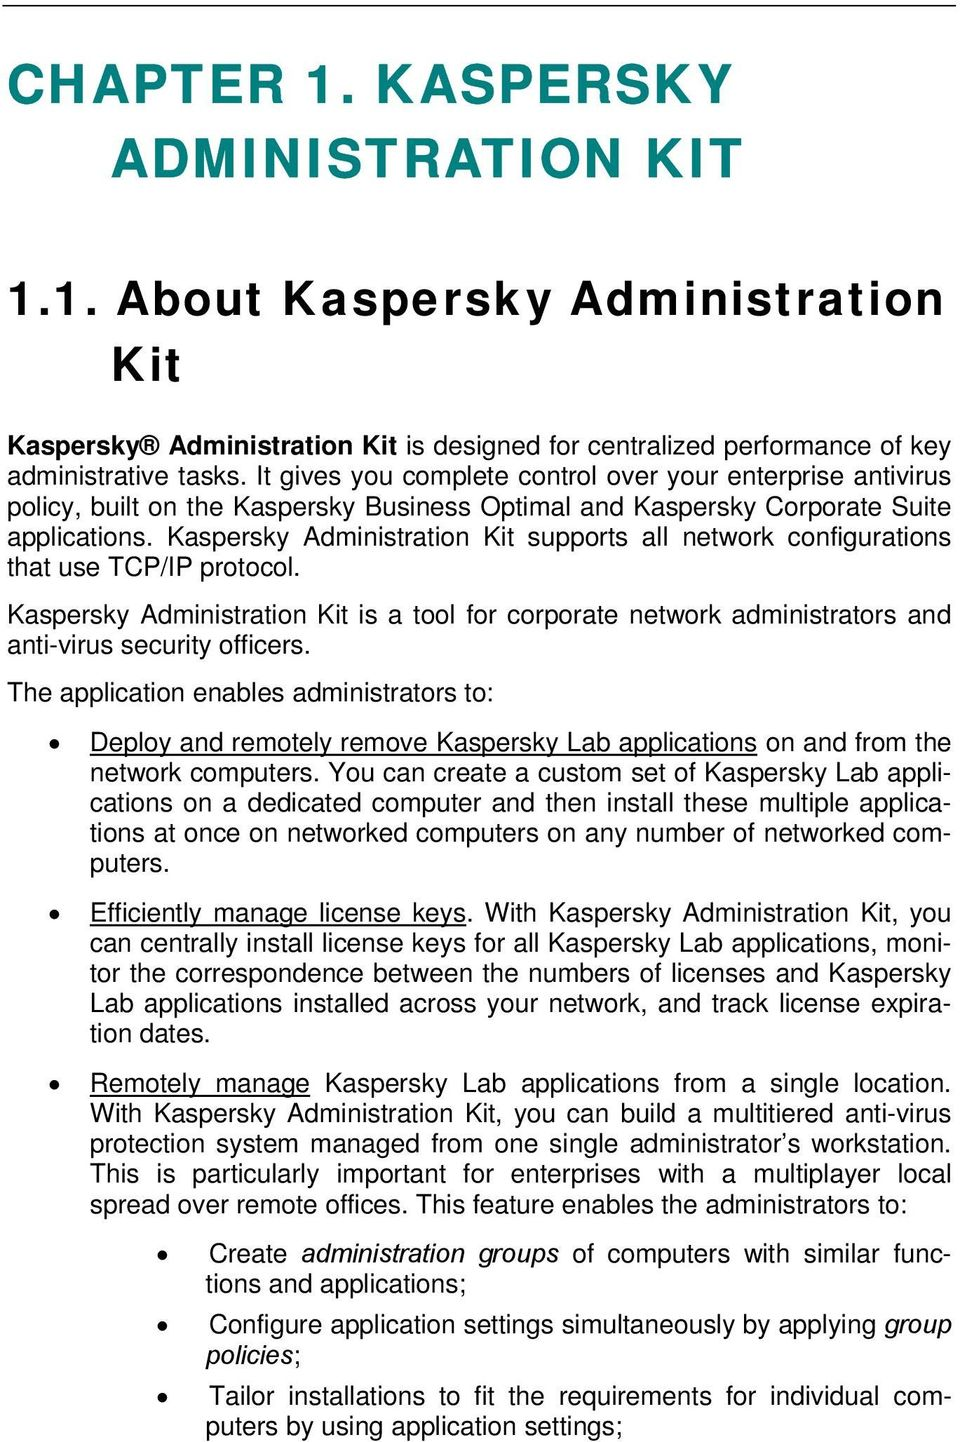 Kaspersky Administration Kit supports all network configurations that use TCP/IP protocol. Kaspersky Administration Kit is a tool for corporate network administrators and anti-virus security officers.